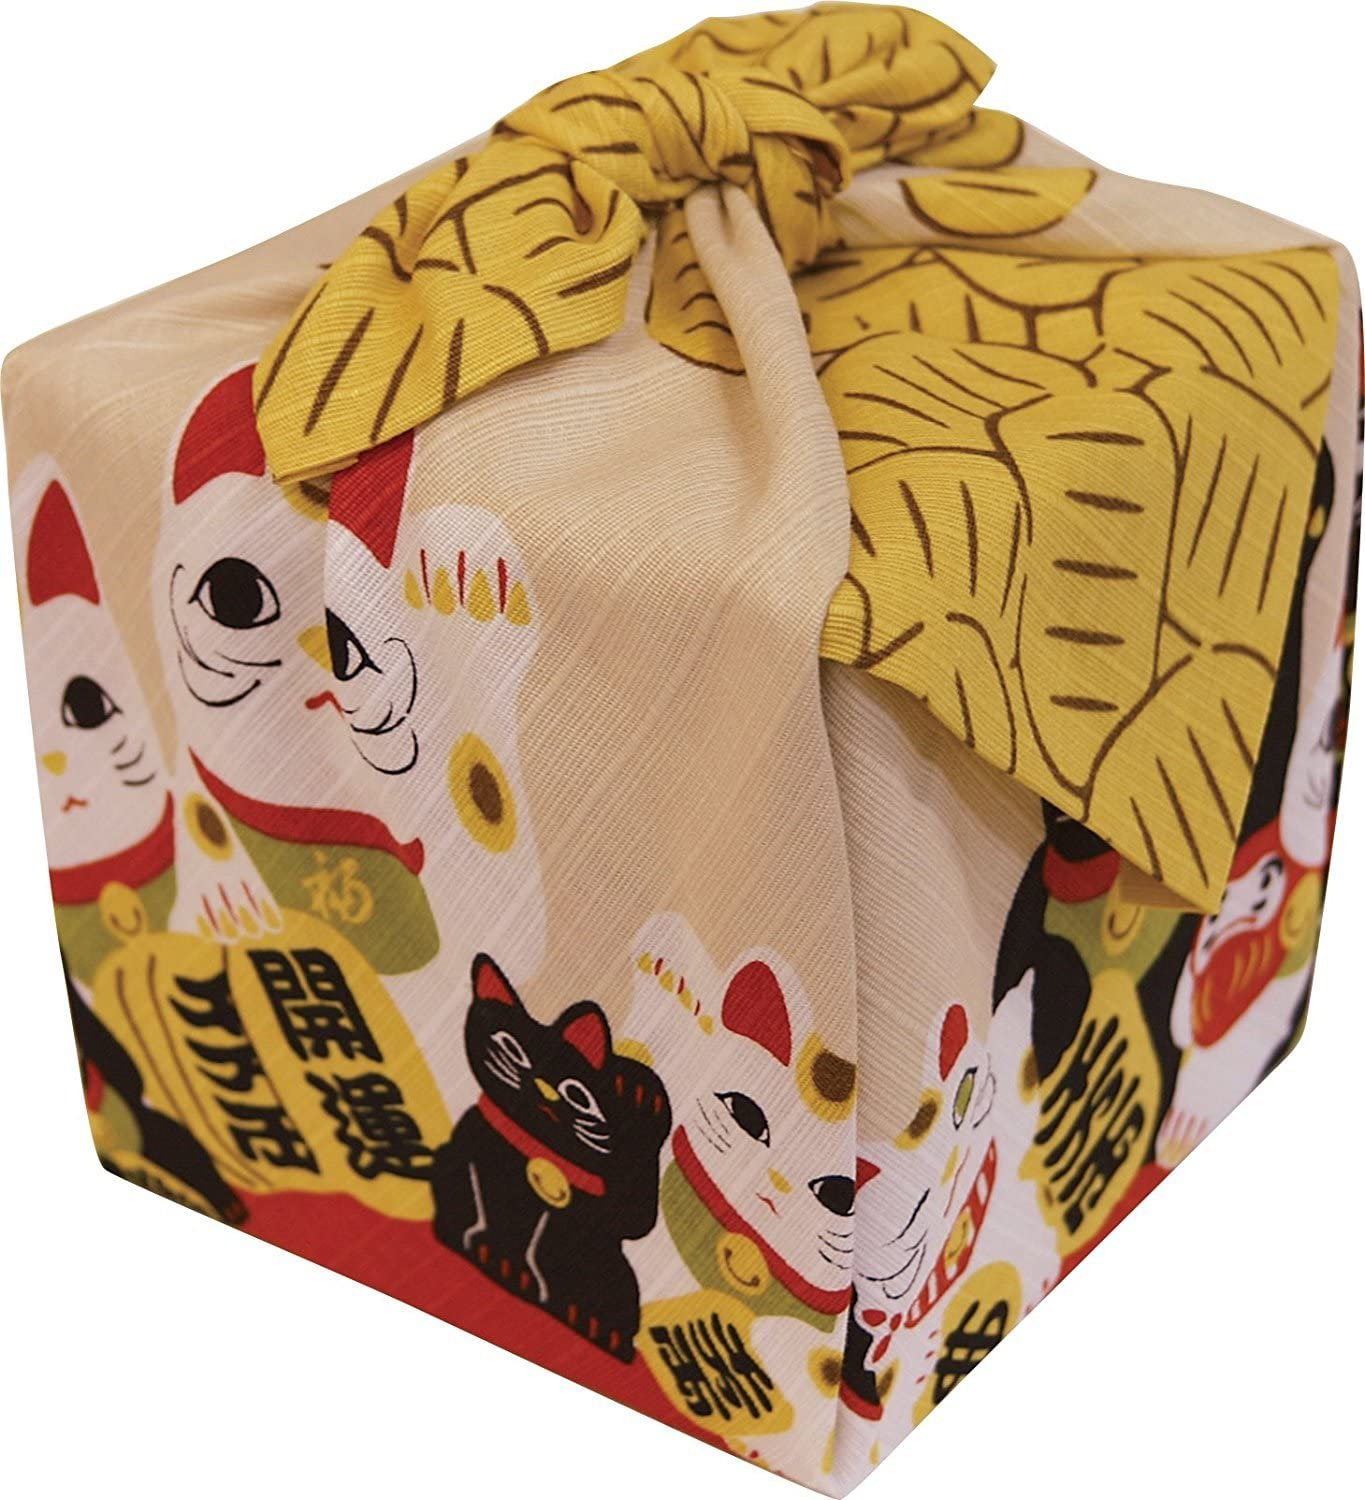 Japanese wrapping cloth FUROSHIKI - gift ideas from japan